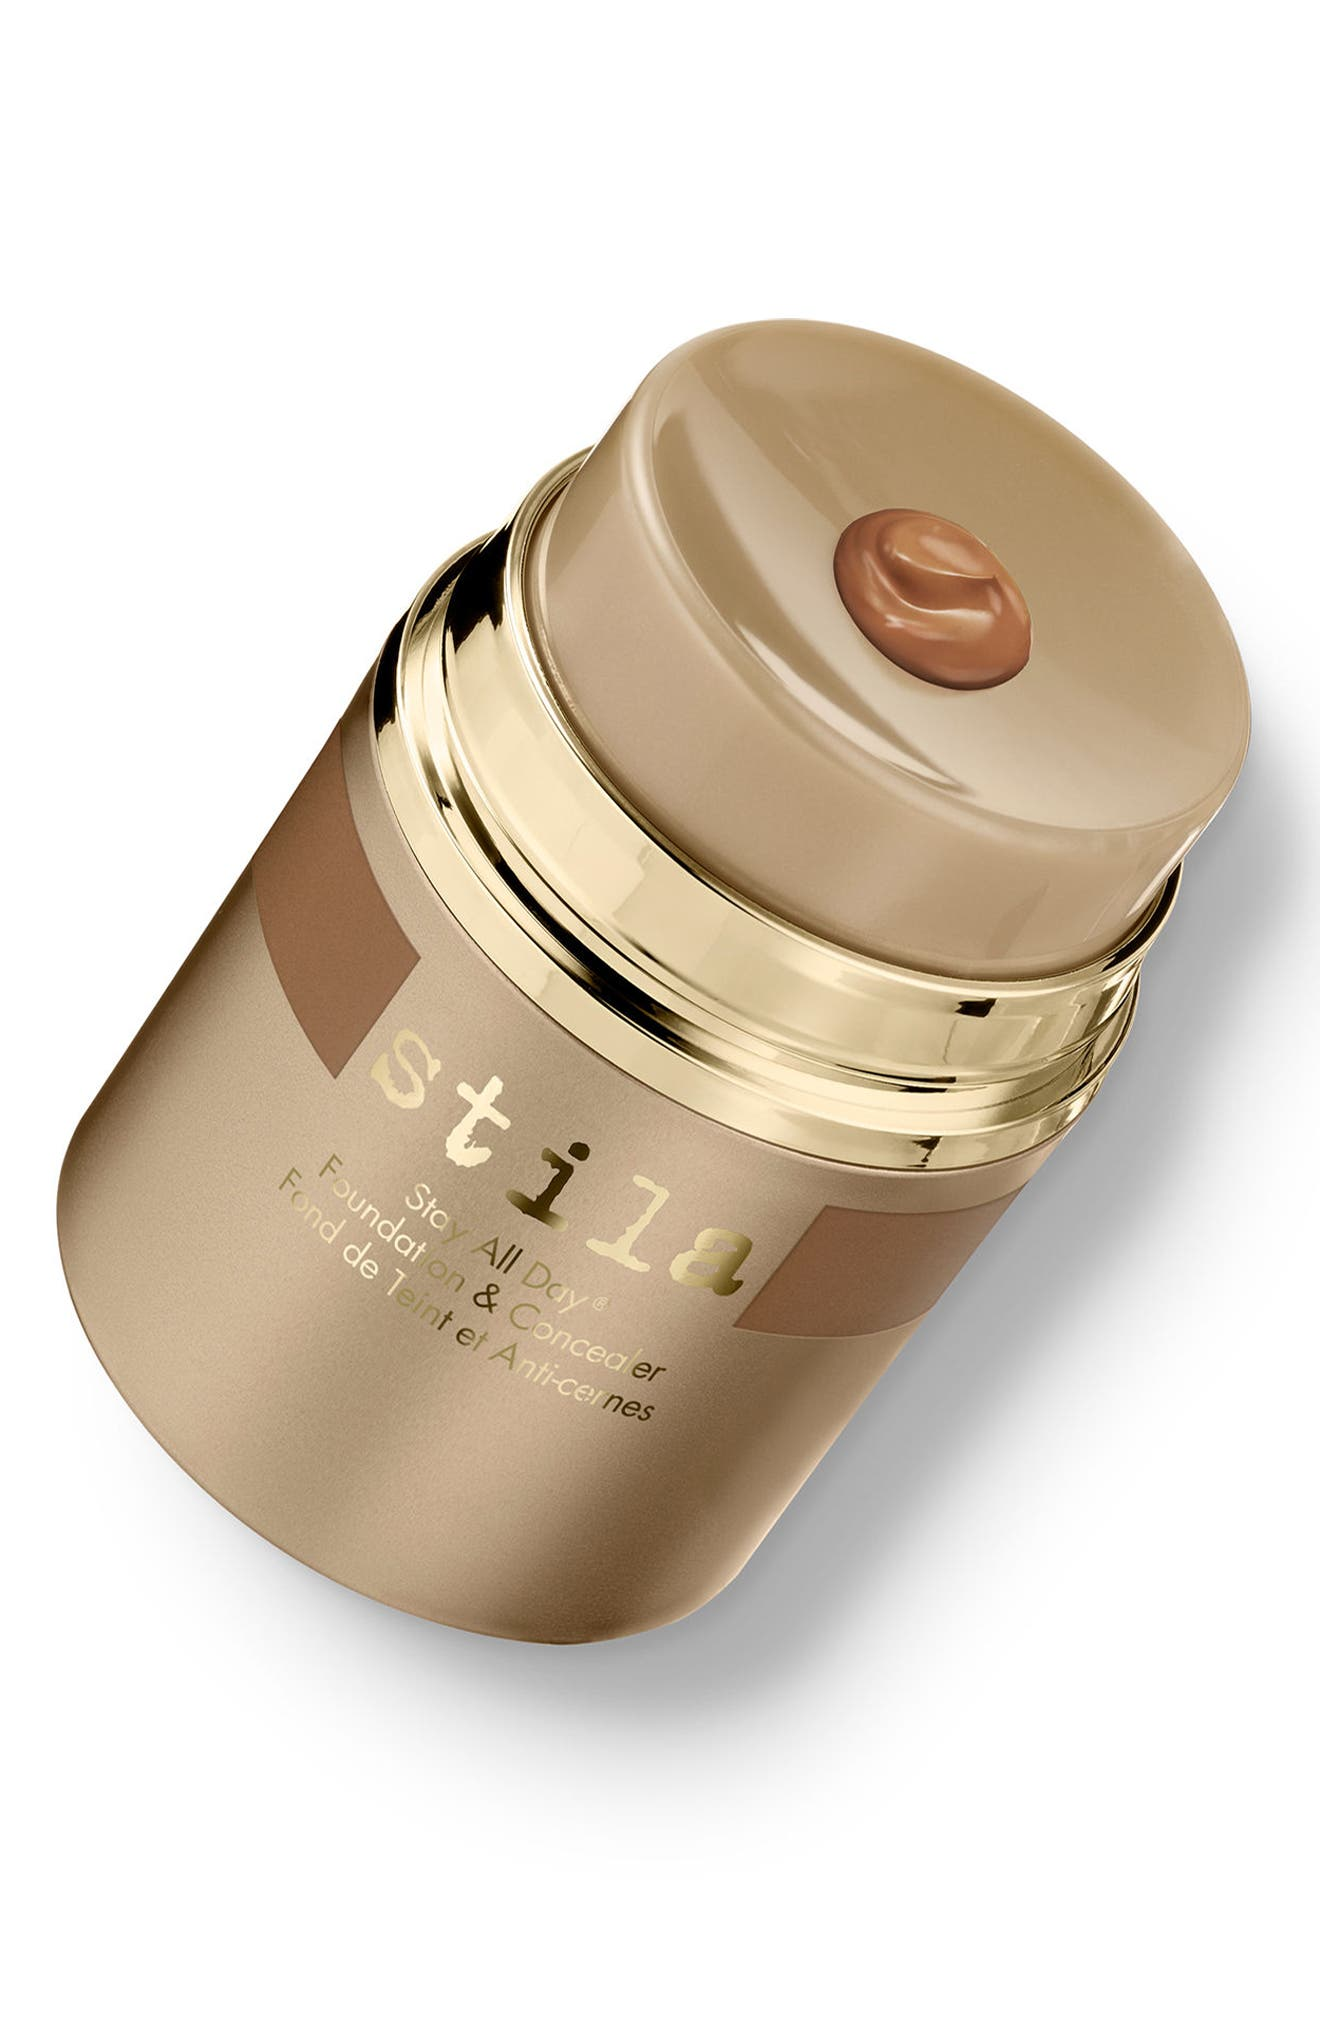 Stay All Day<sup>®</sup> Foundation & Concealer,                             Alternate thumbnail 3, color,                             STAY AD FOUND CONC TAN 13